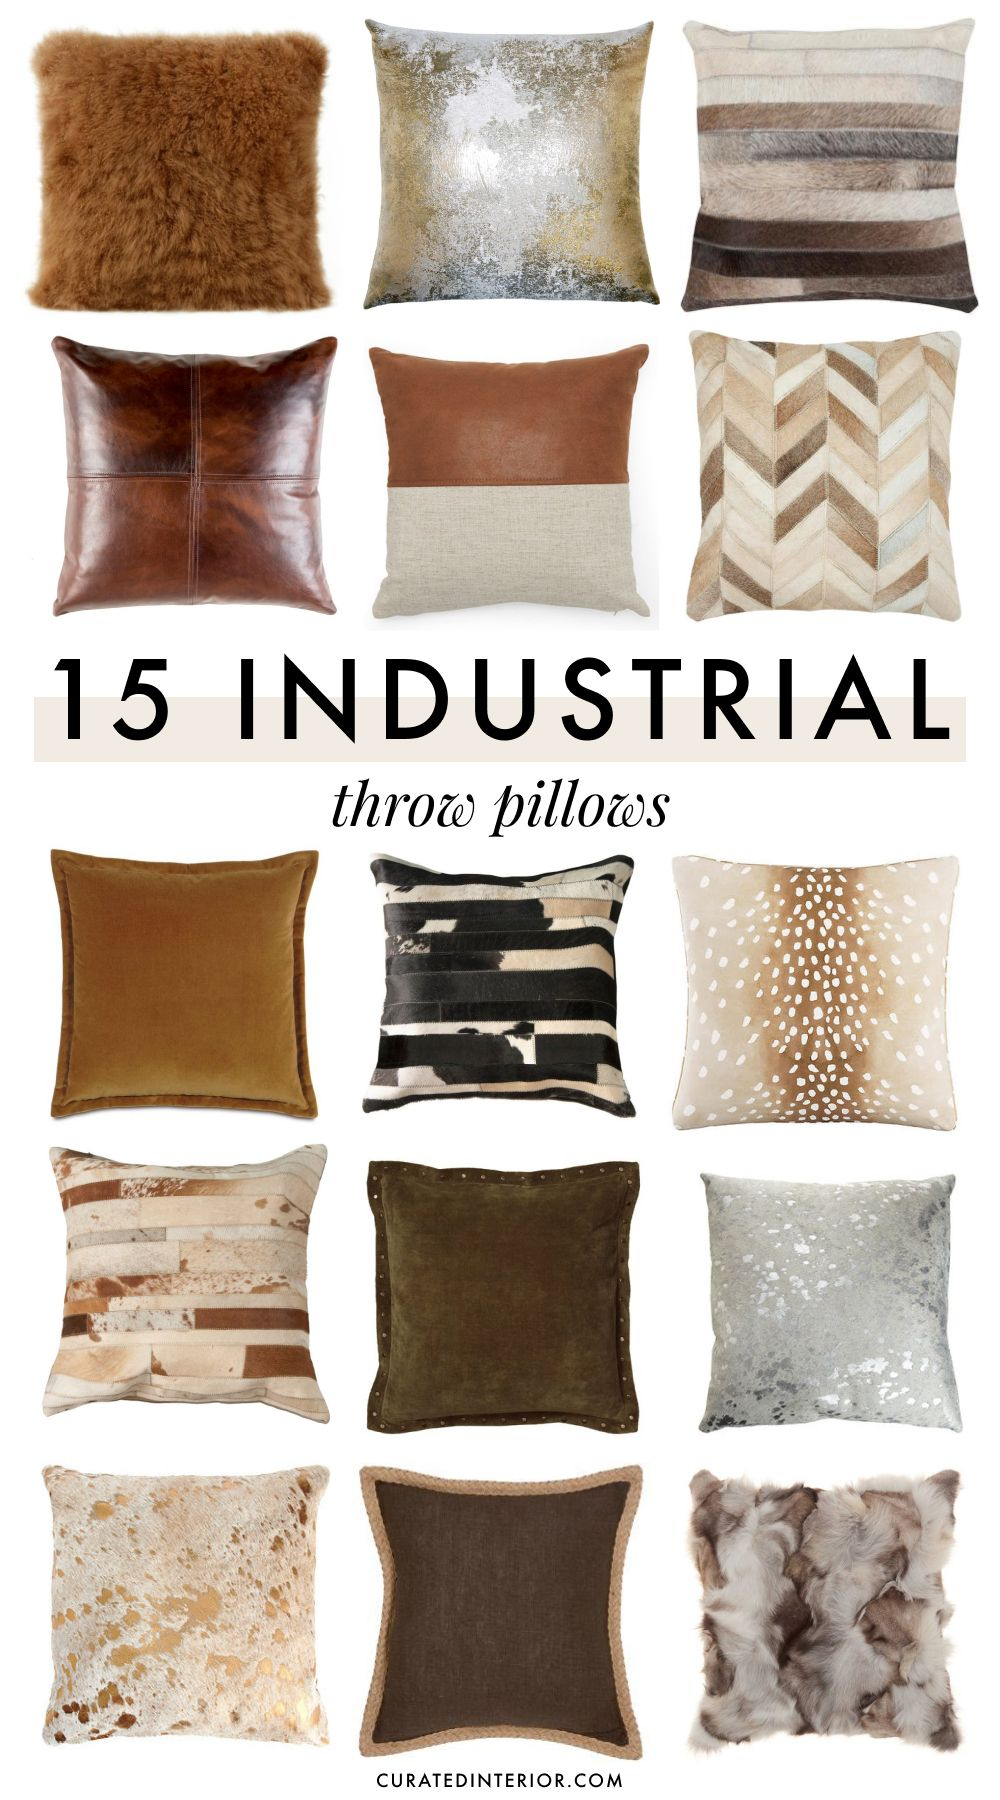 15 Industrial Throw Pillows for an Urban Vibe